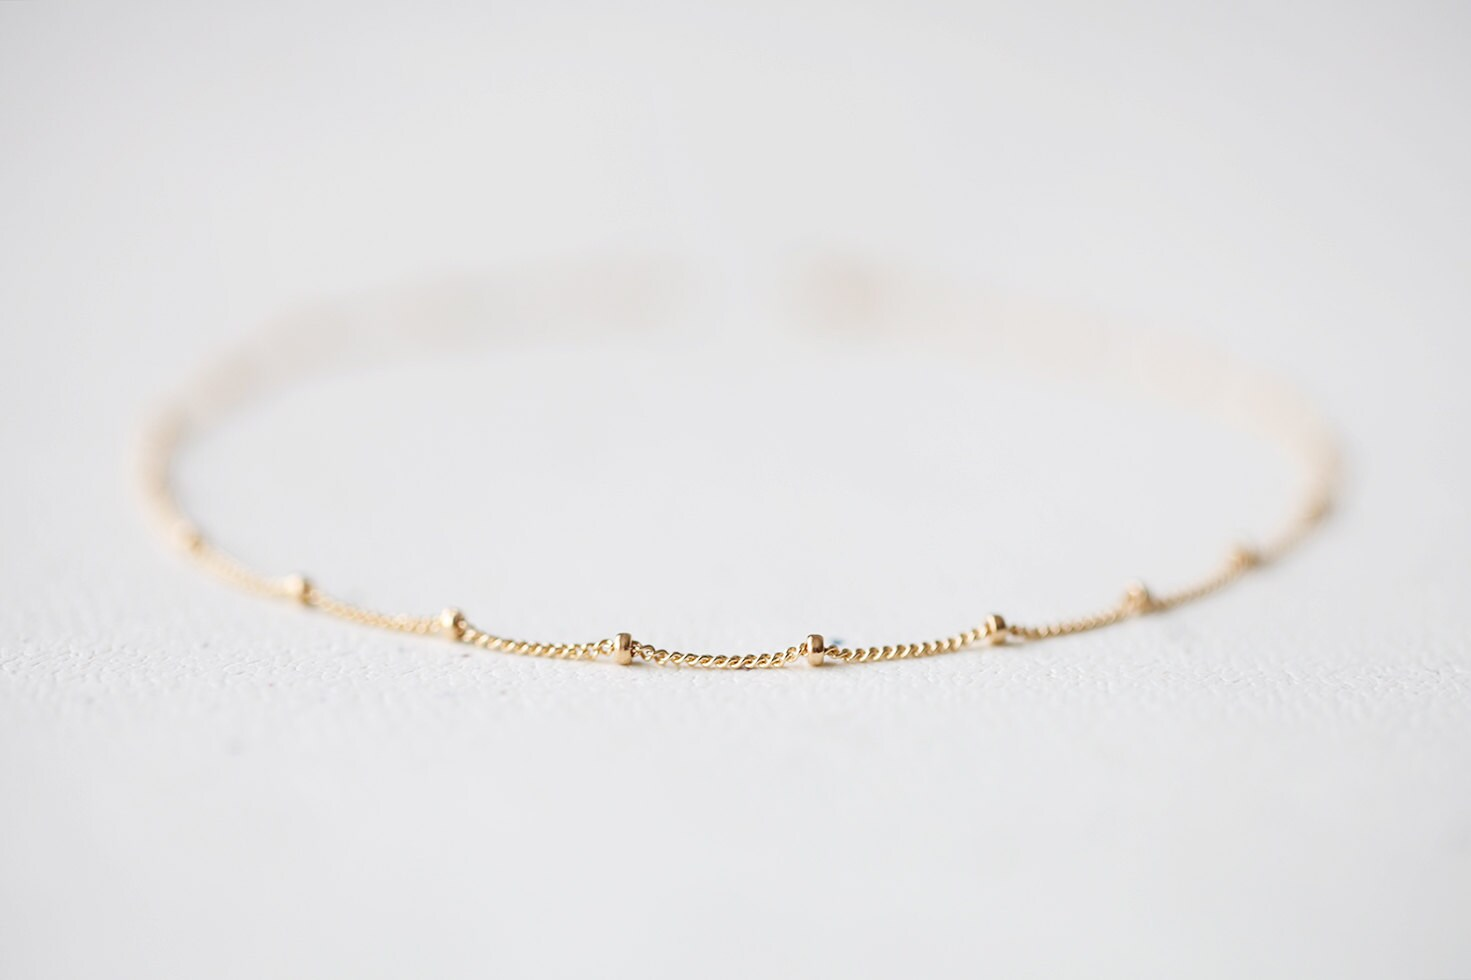 Delicate Gold Bracelet simple and delicate beaded14k gold